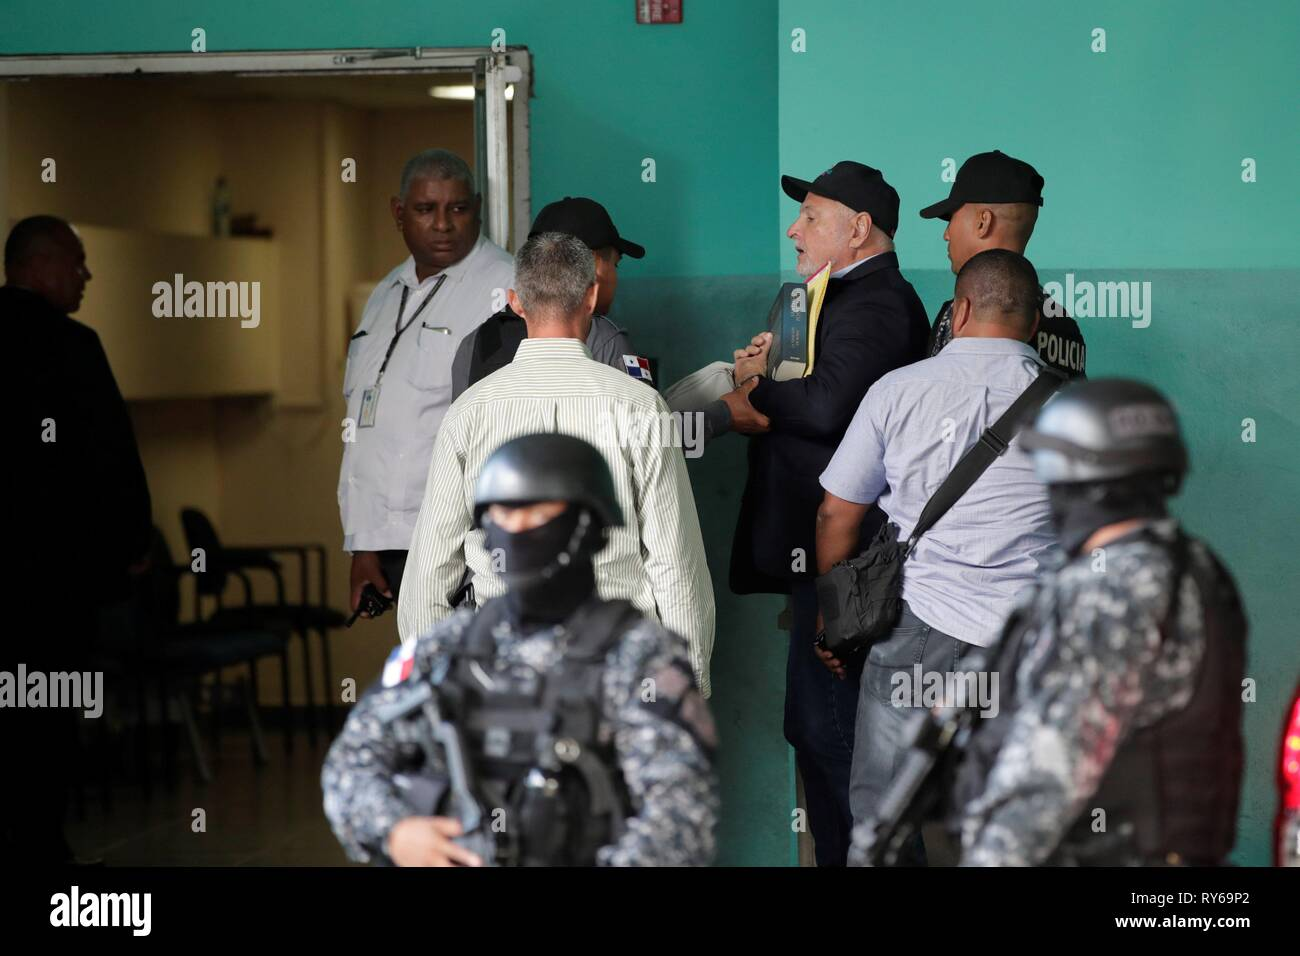 Former President of Panama, Ricardo Martinelli (C), is escorted by the Police upon his arrival at the accusatory penal system court for the trial against him charged with telephone wiretaps during his 2009-2014 term in Panama City, Panama, 12 March 2019. The trial of current candidate for mayor and deputy Ricardo Martinelli begins today and he could receive a sentence of up to 21 years. EFE/ Welcome Velasco - Stock Image